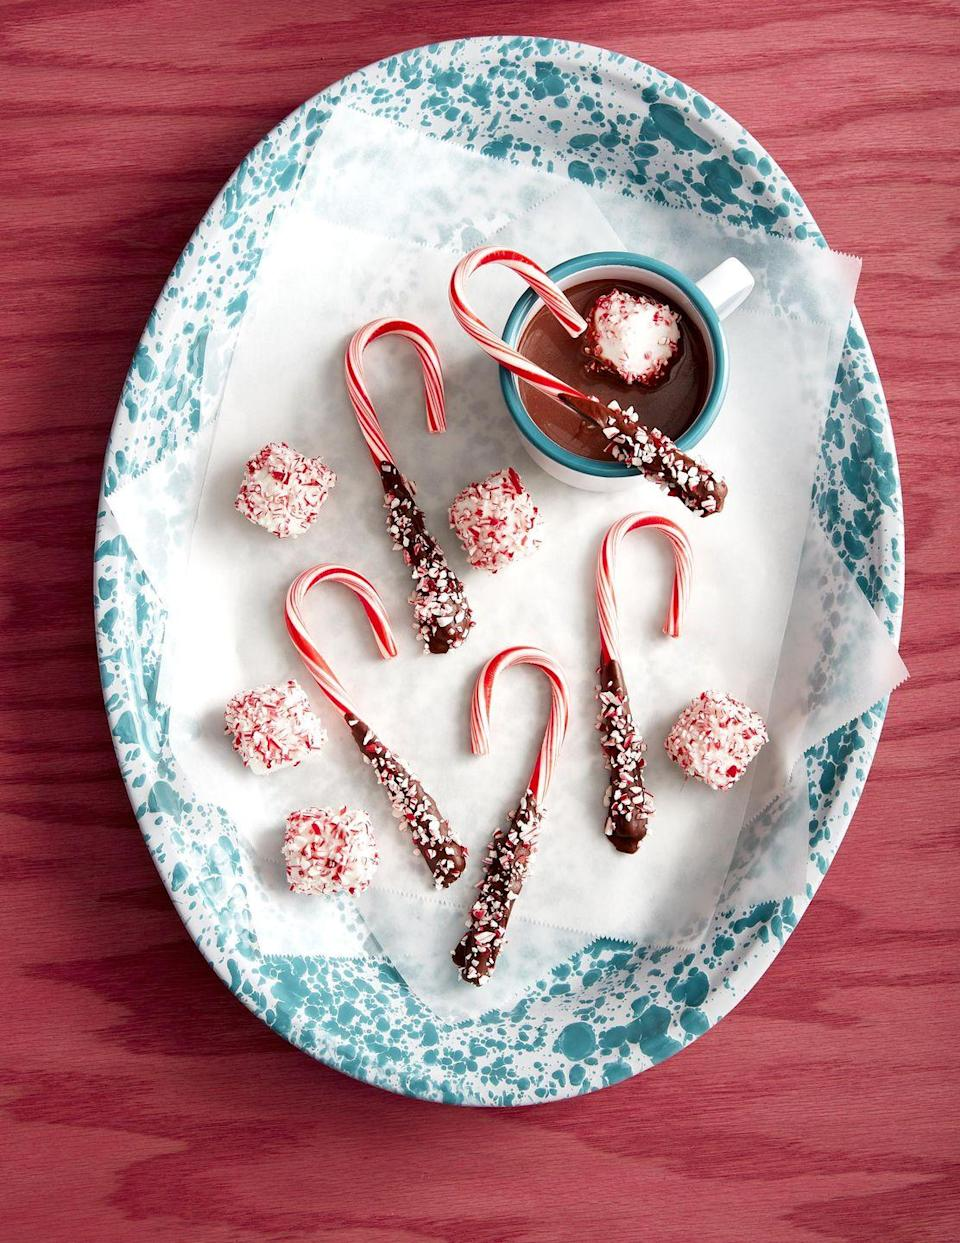 <p>Gift a sweet treat that's perfect for celebrating the holidays on cold, nippy nights. <br><br><strong>To make</strong>: Dip ends of candy canes in melted semisweet chocolate. Sprinkle with crushed candy canes; place on a parchment paper–lined plate, and chill. Lightly mist large marshmallows with water. Sprinkle with crushed candy canes.<br></p>